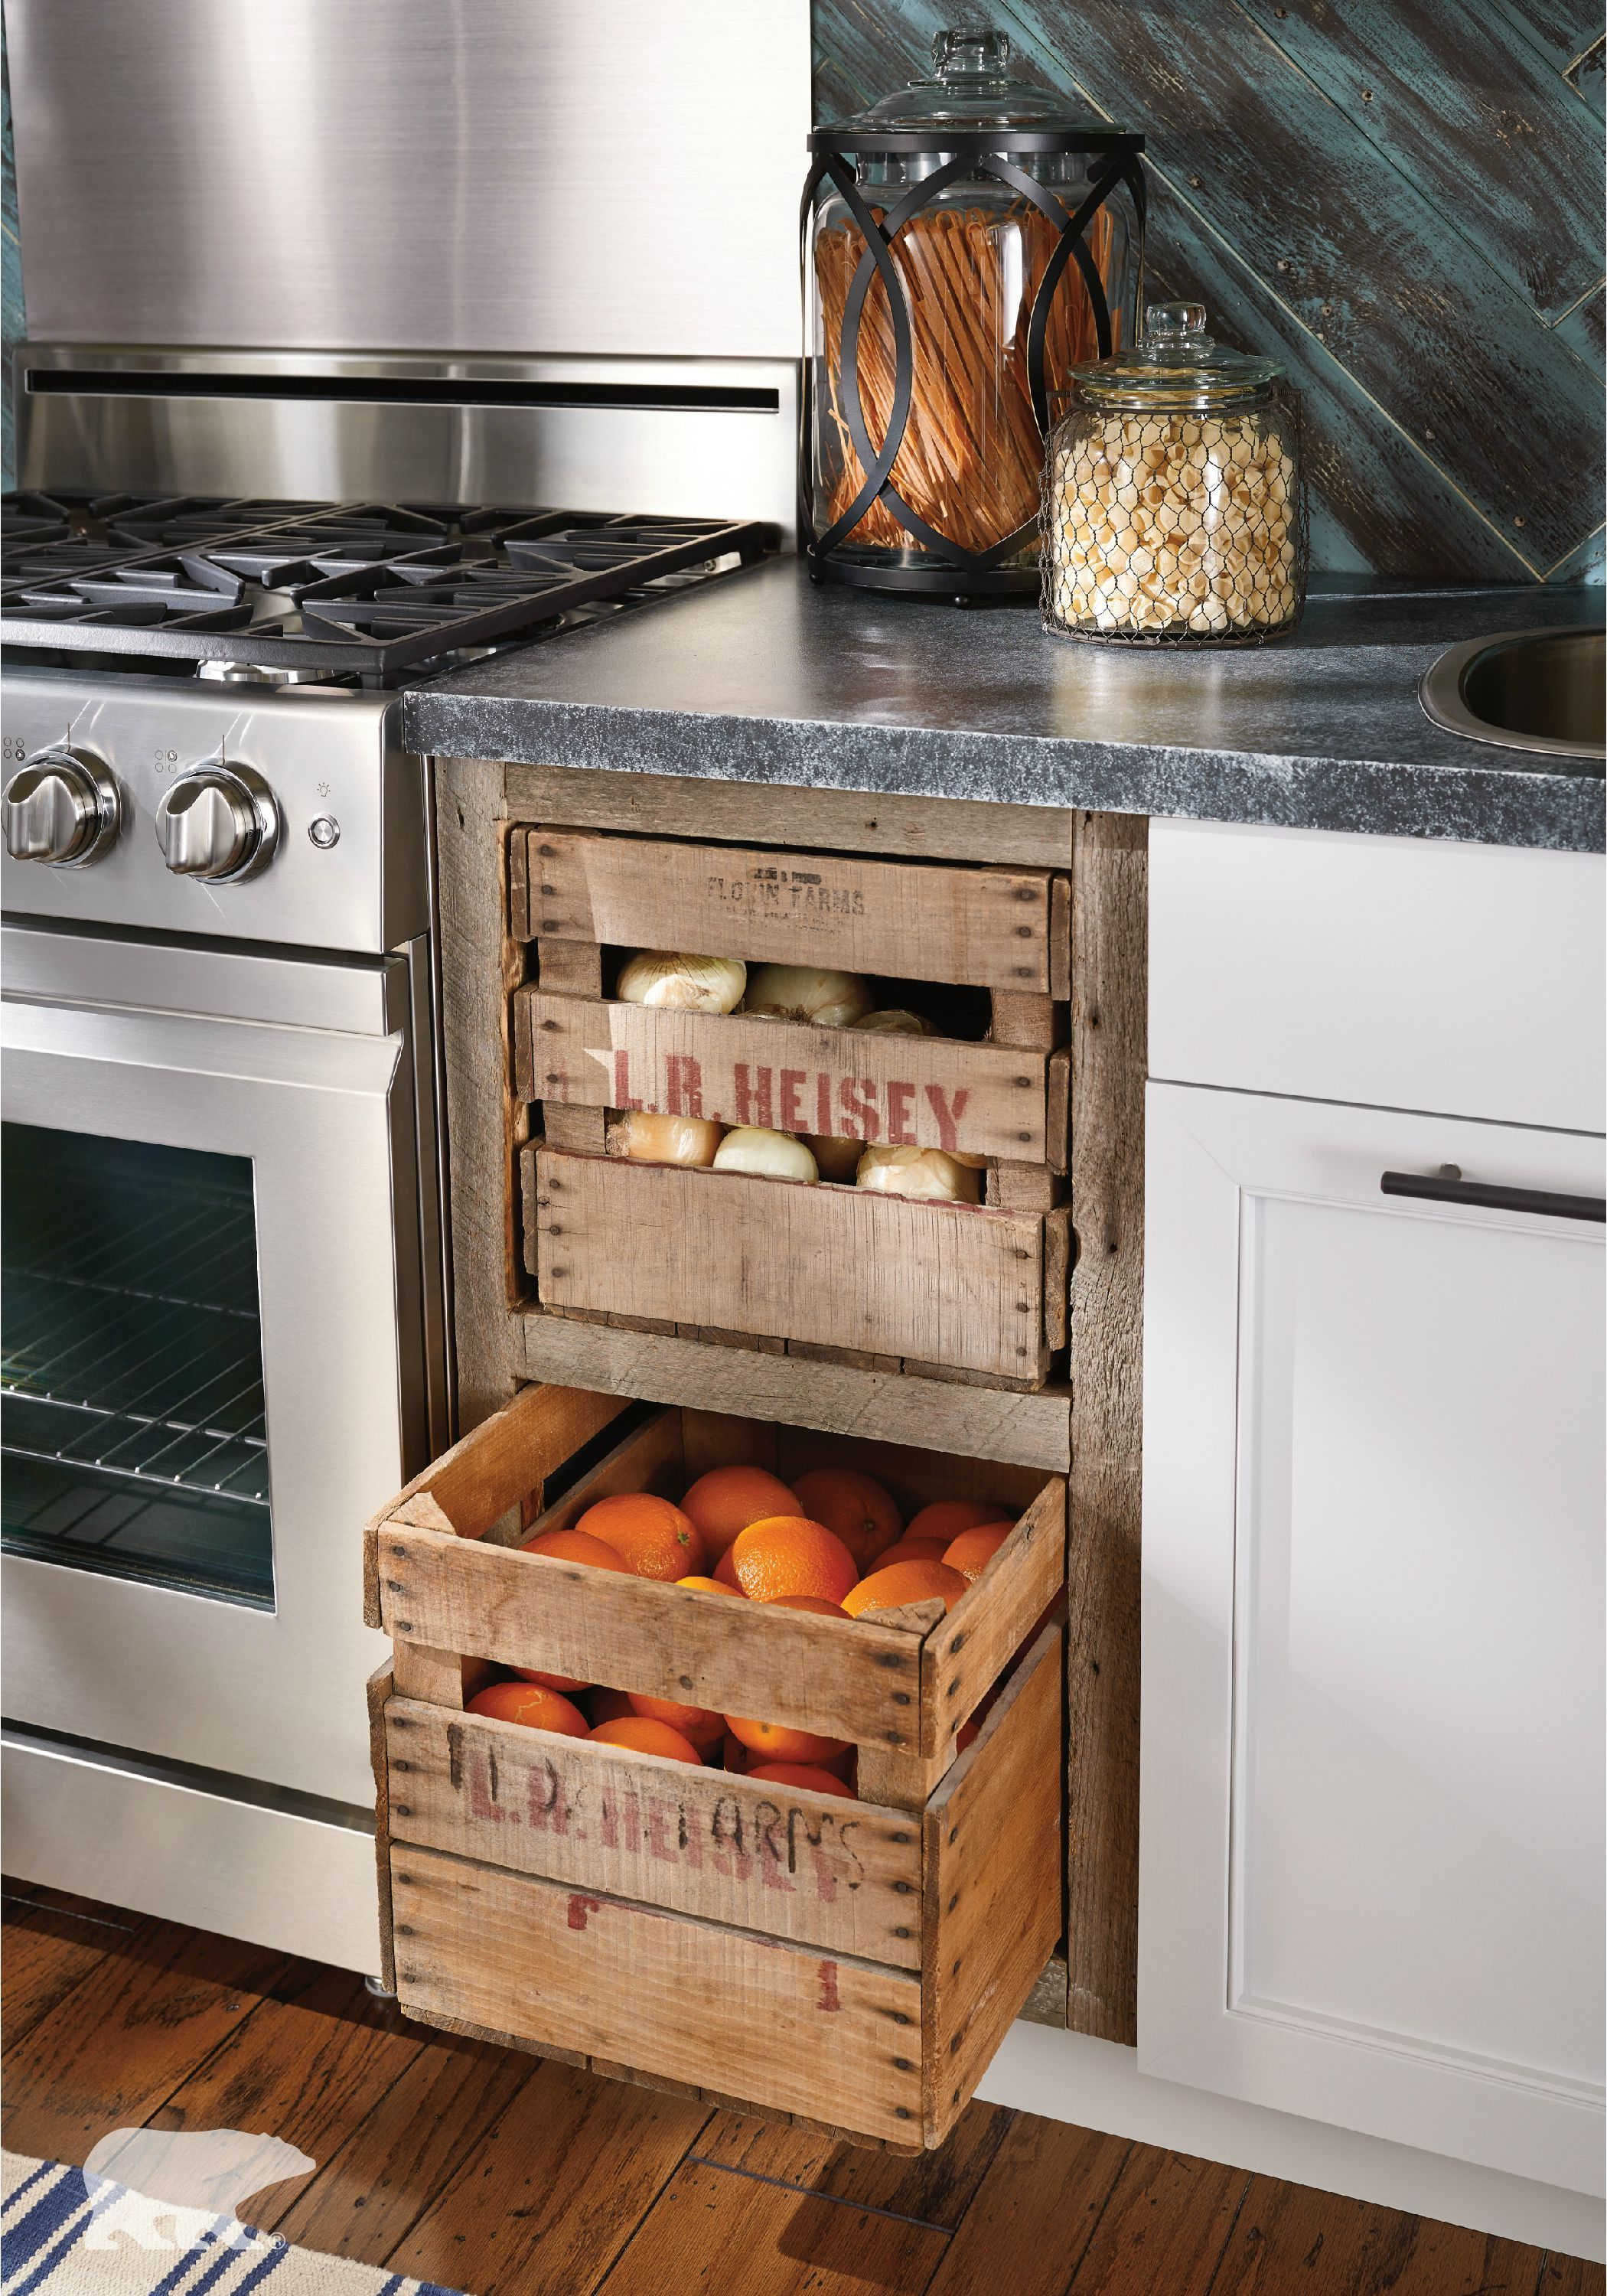 Rustic Kitchen Storage Crate Drawers For Storing Fruits And Veggie Astuce Rangement Cuisine Rangement Cuisine Tiroir Cuisine